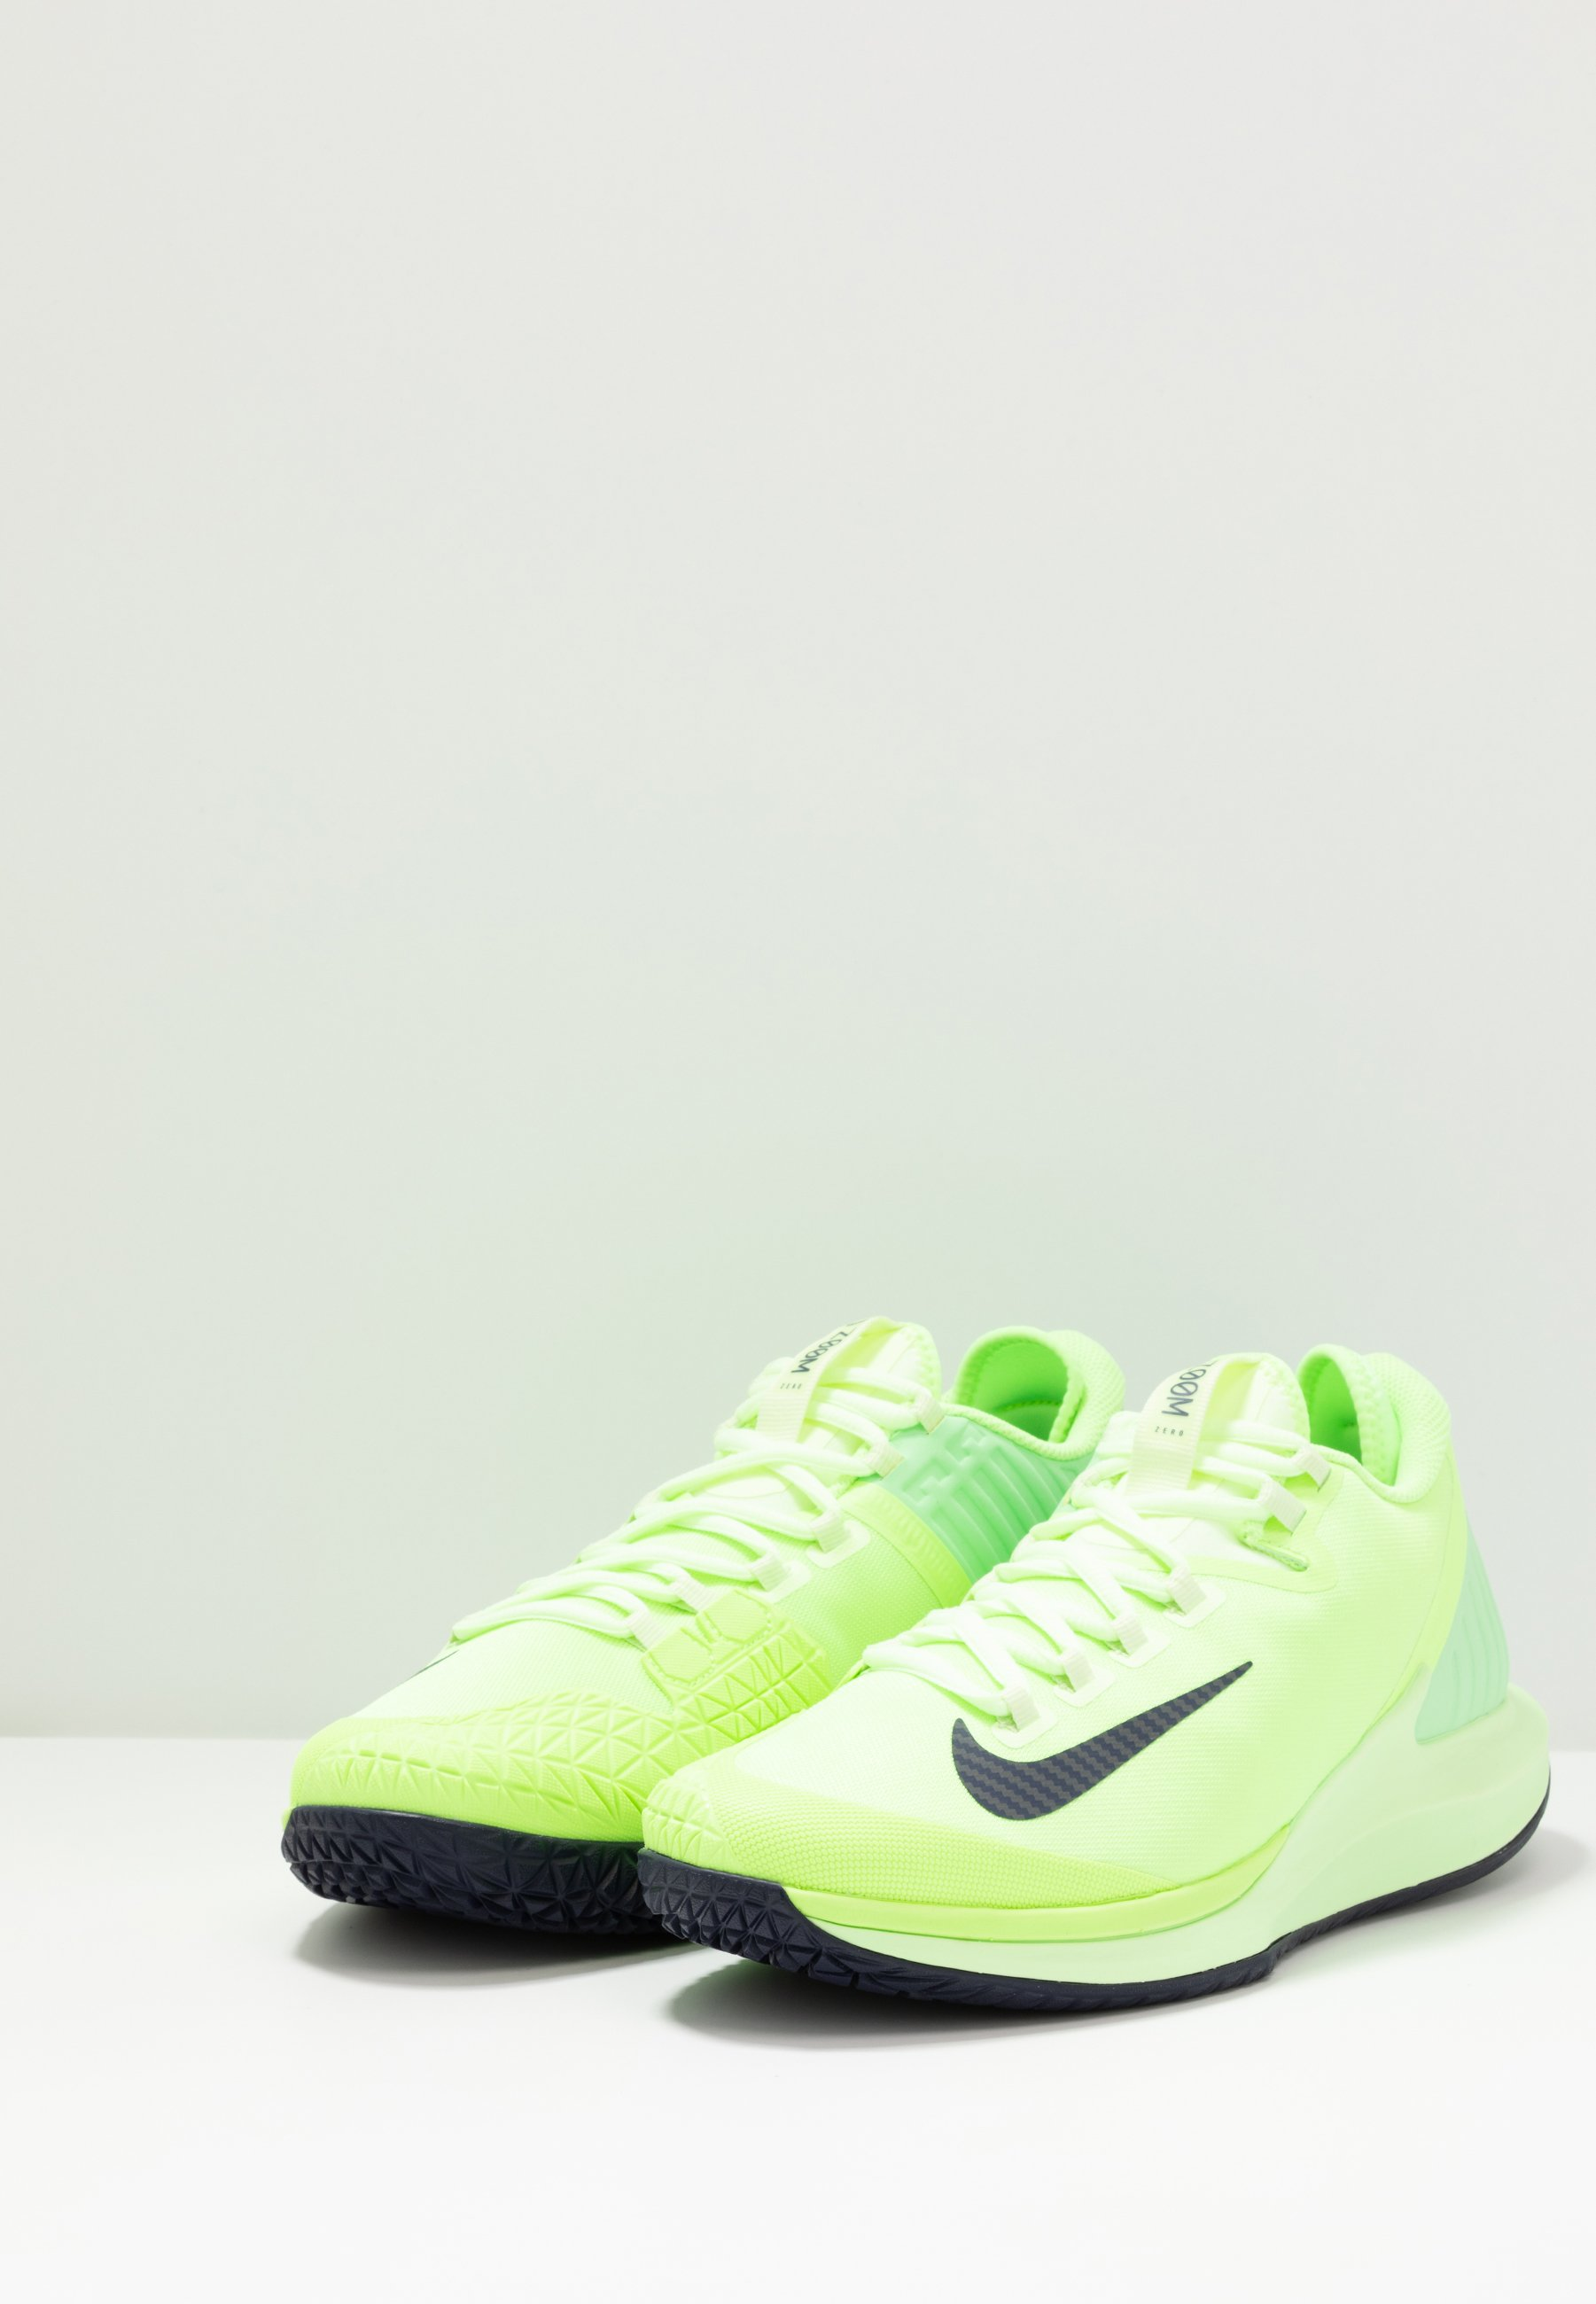 A basso costo Scarpe da uomo Nike Performance COURT AIR ZOOM Scarpe da tennis per tutte le superfici ghost green/blackened blue/barely volt